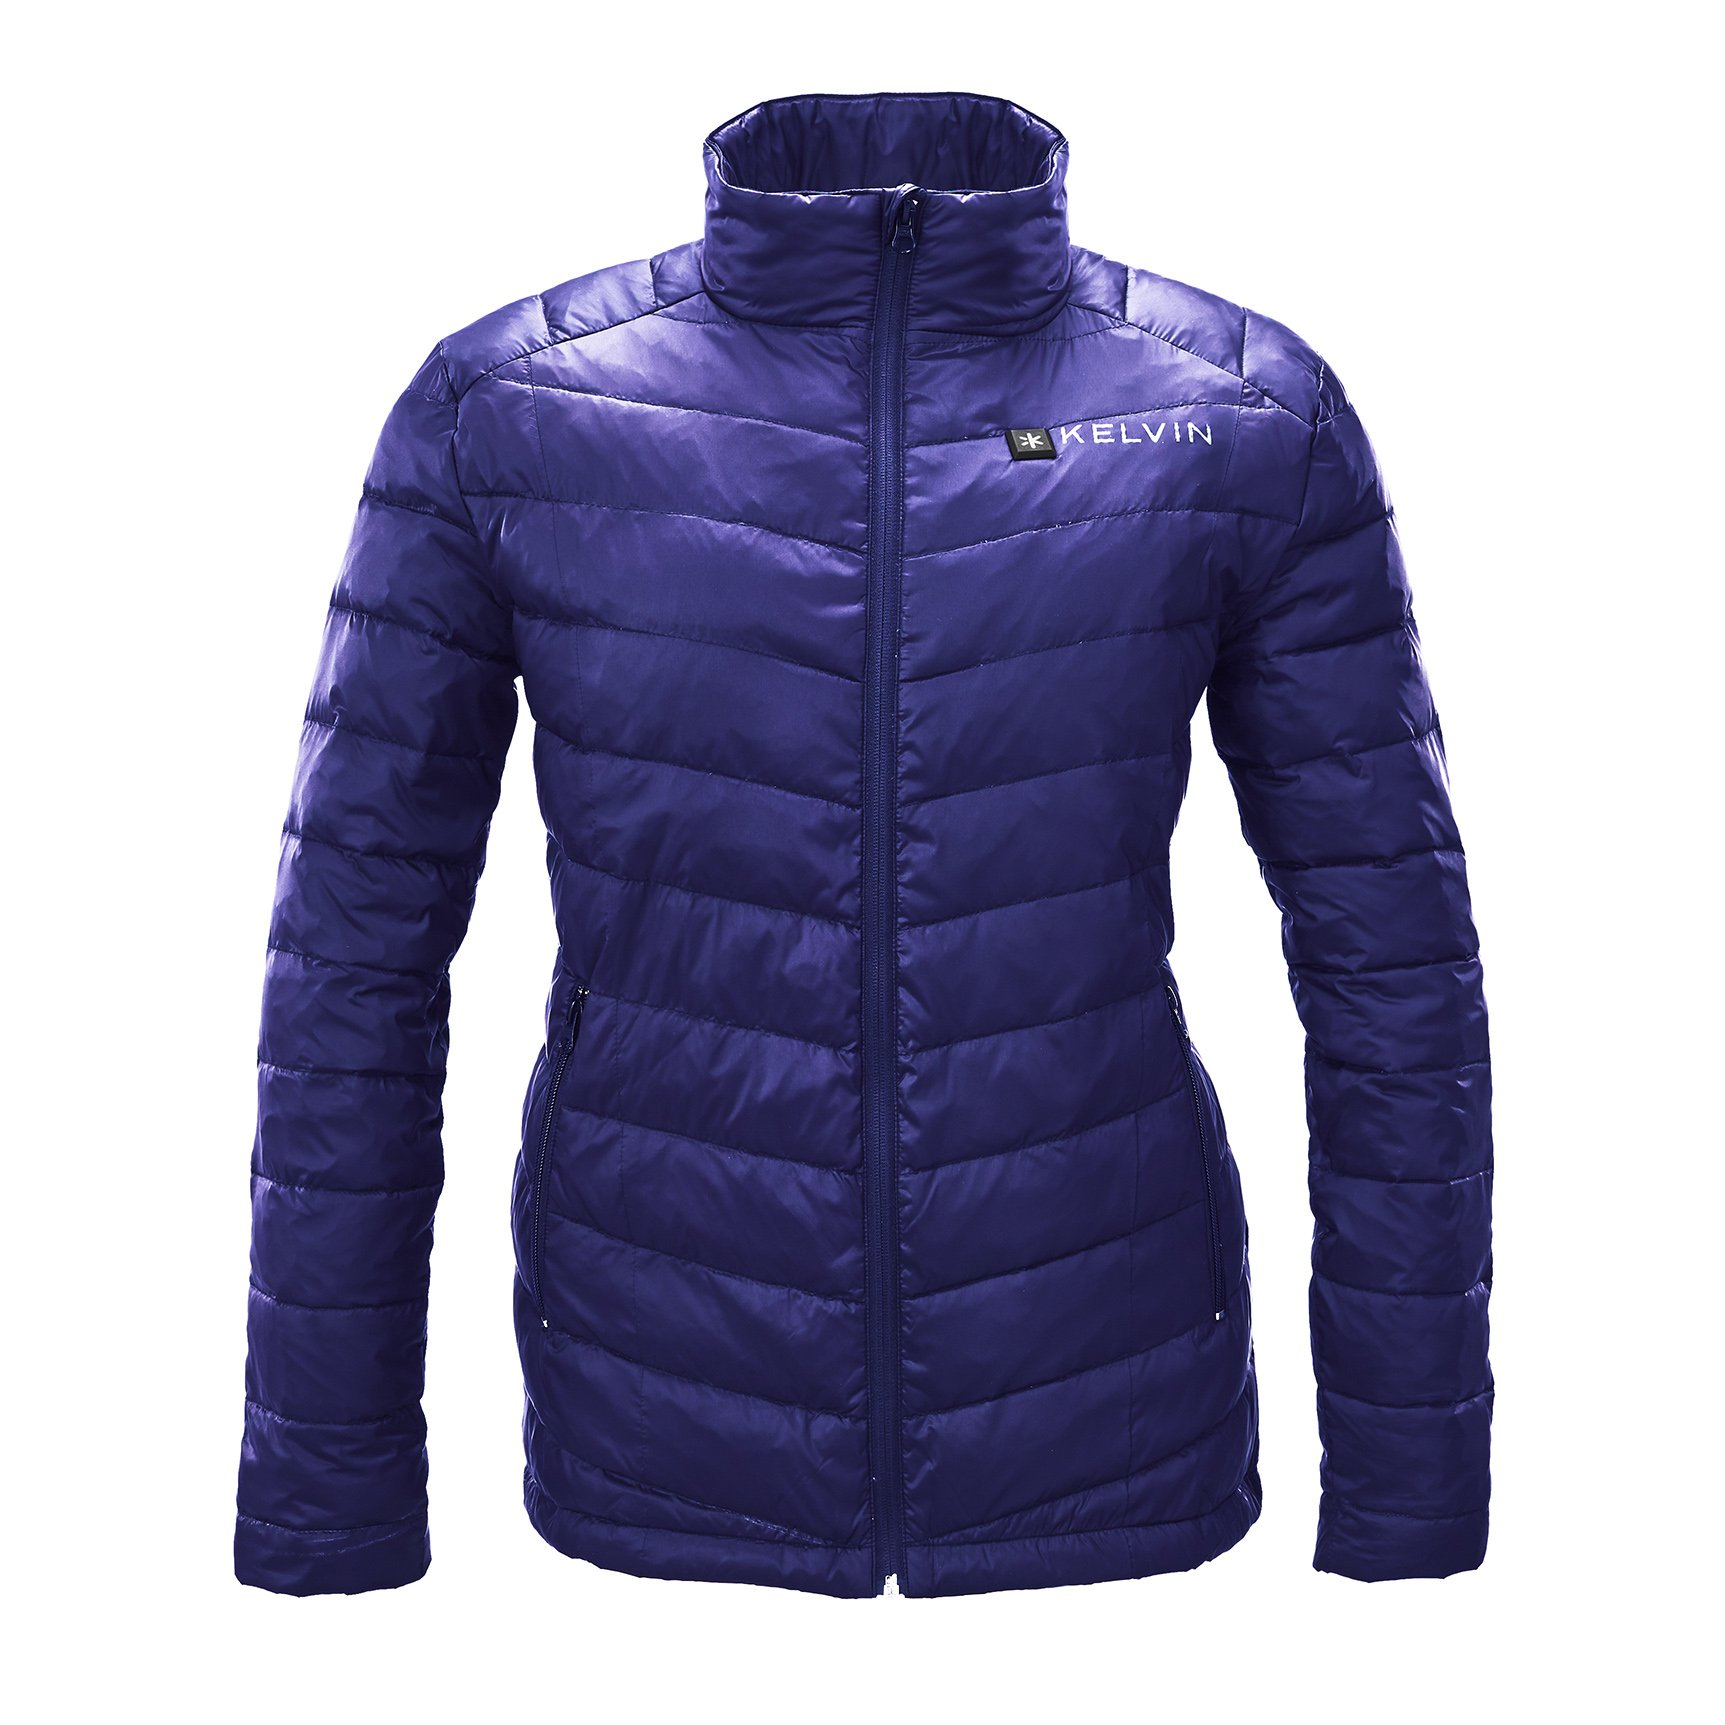 Kelvin Heated Jacket For Women - 5 Heat Zones + 10Hr Battery For The Finest Heated Coat | charges Cell Phones, Extreme Weather + Rip Resistant, 90/10 Duck Down Puffer Jacket | Cermak, Blue - Small